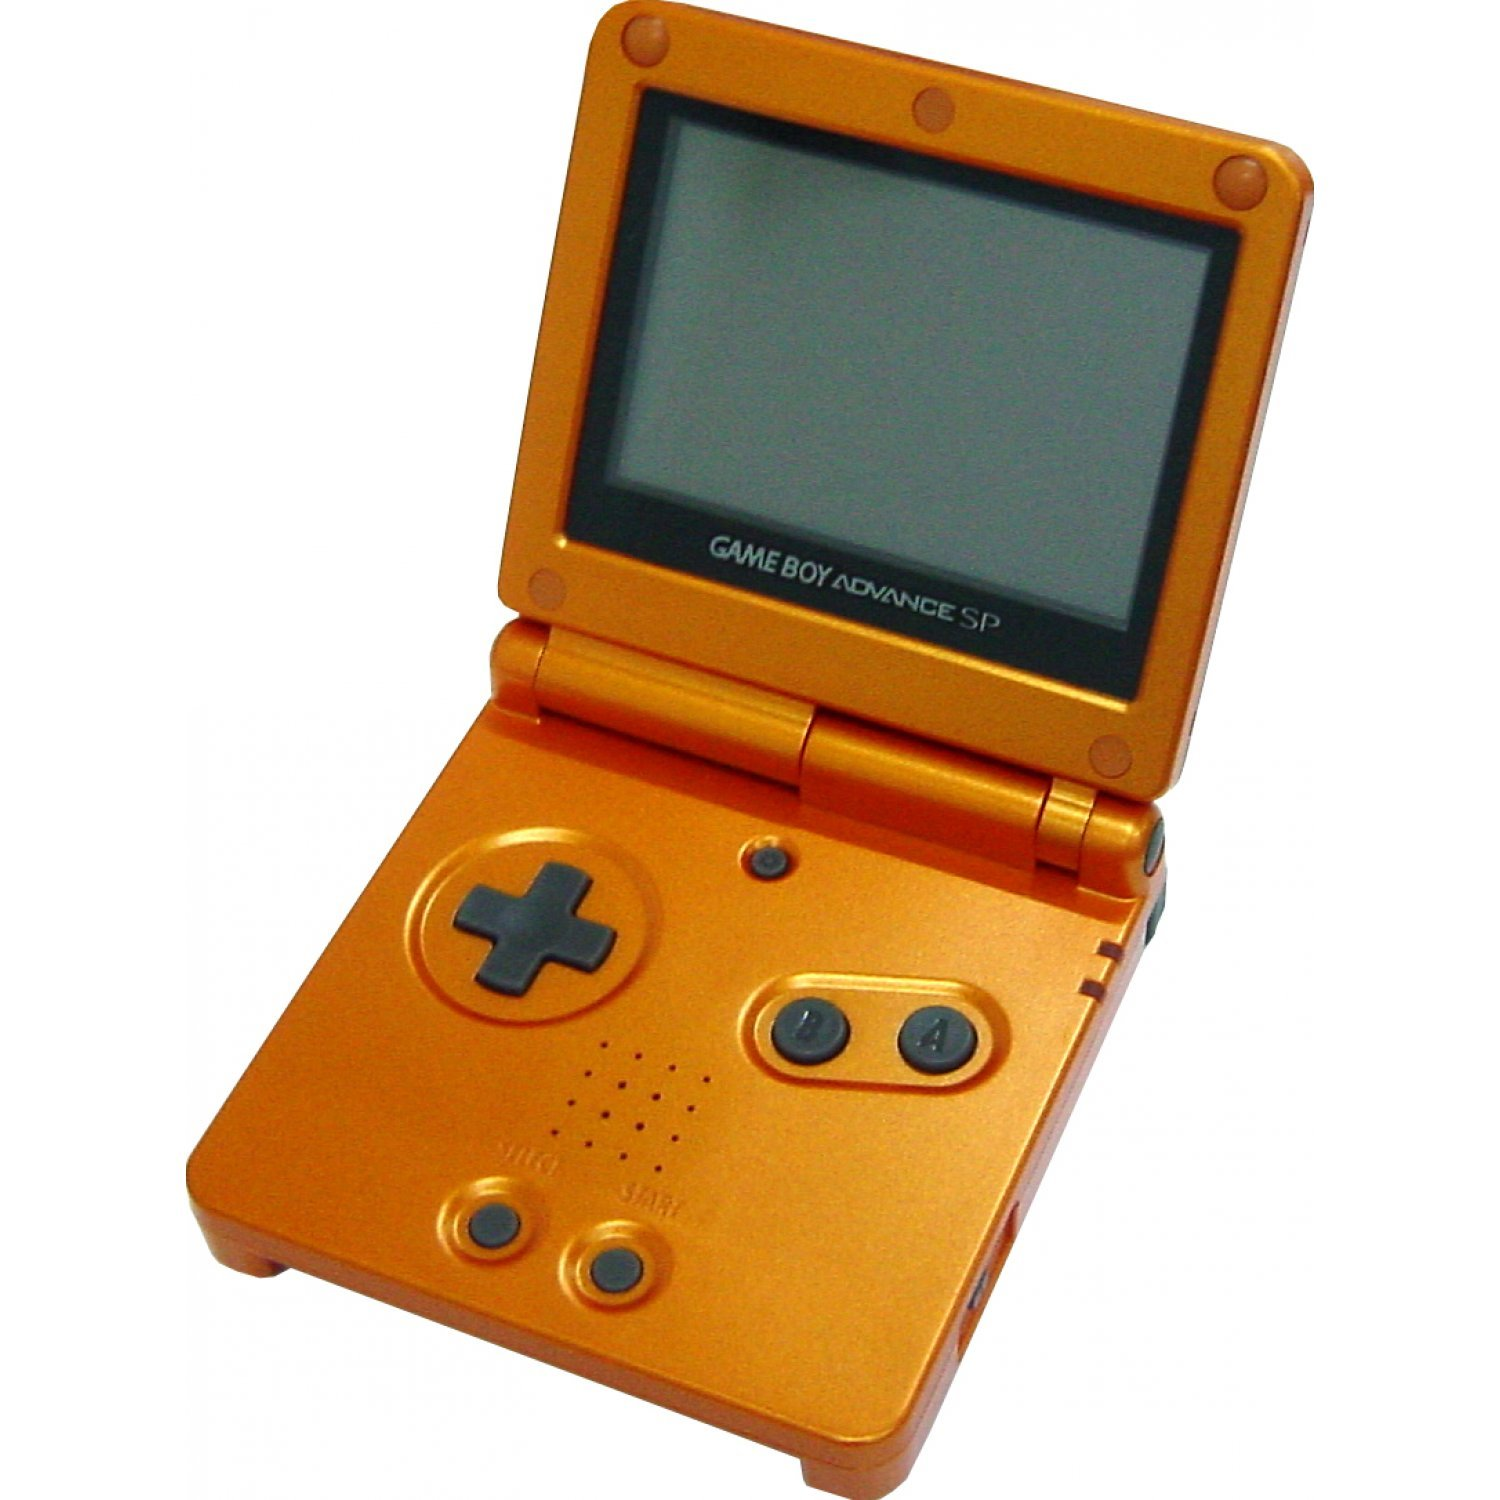 Game Boy Advance Sp : Game boy advance sp pokemon center limited edition